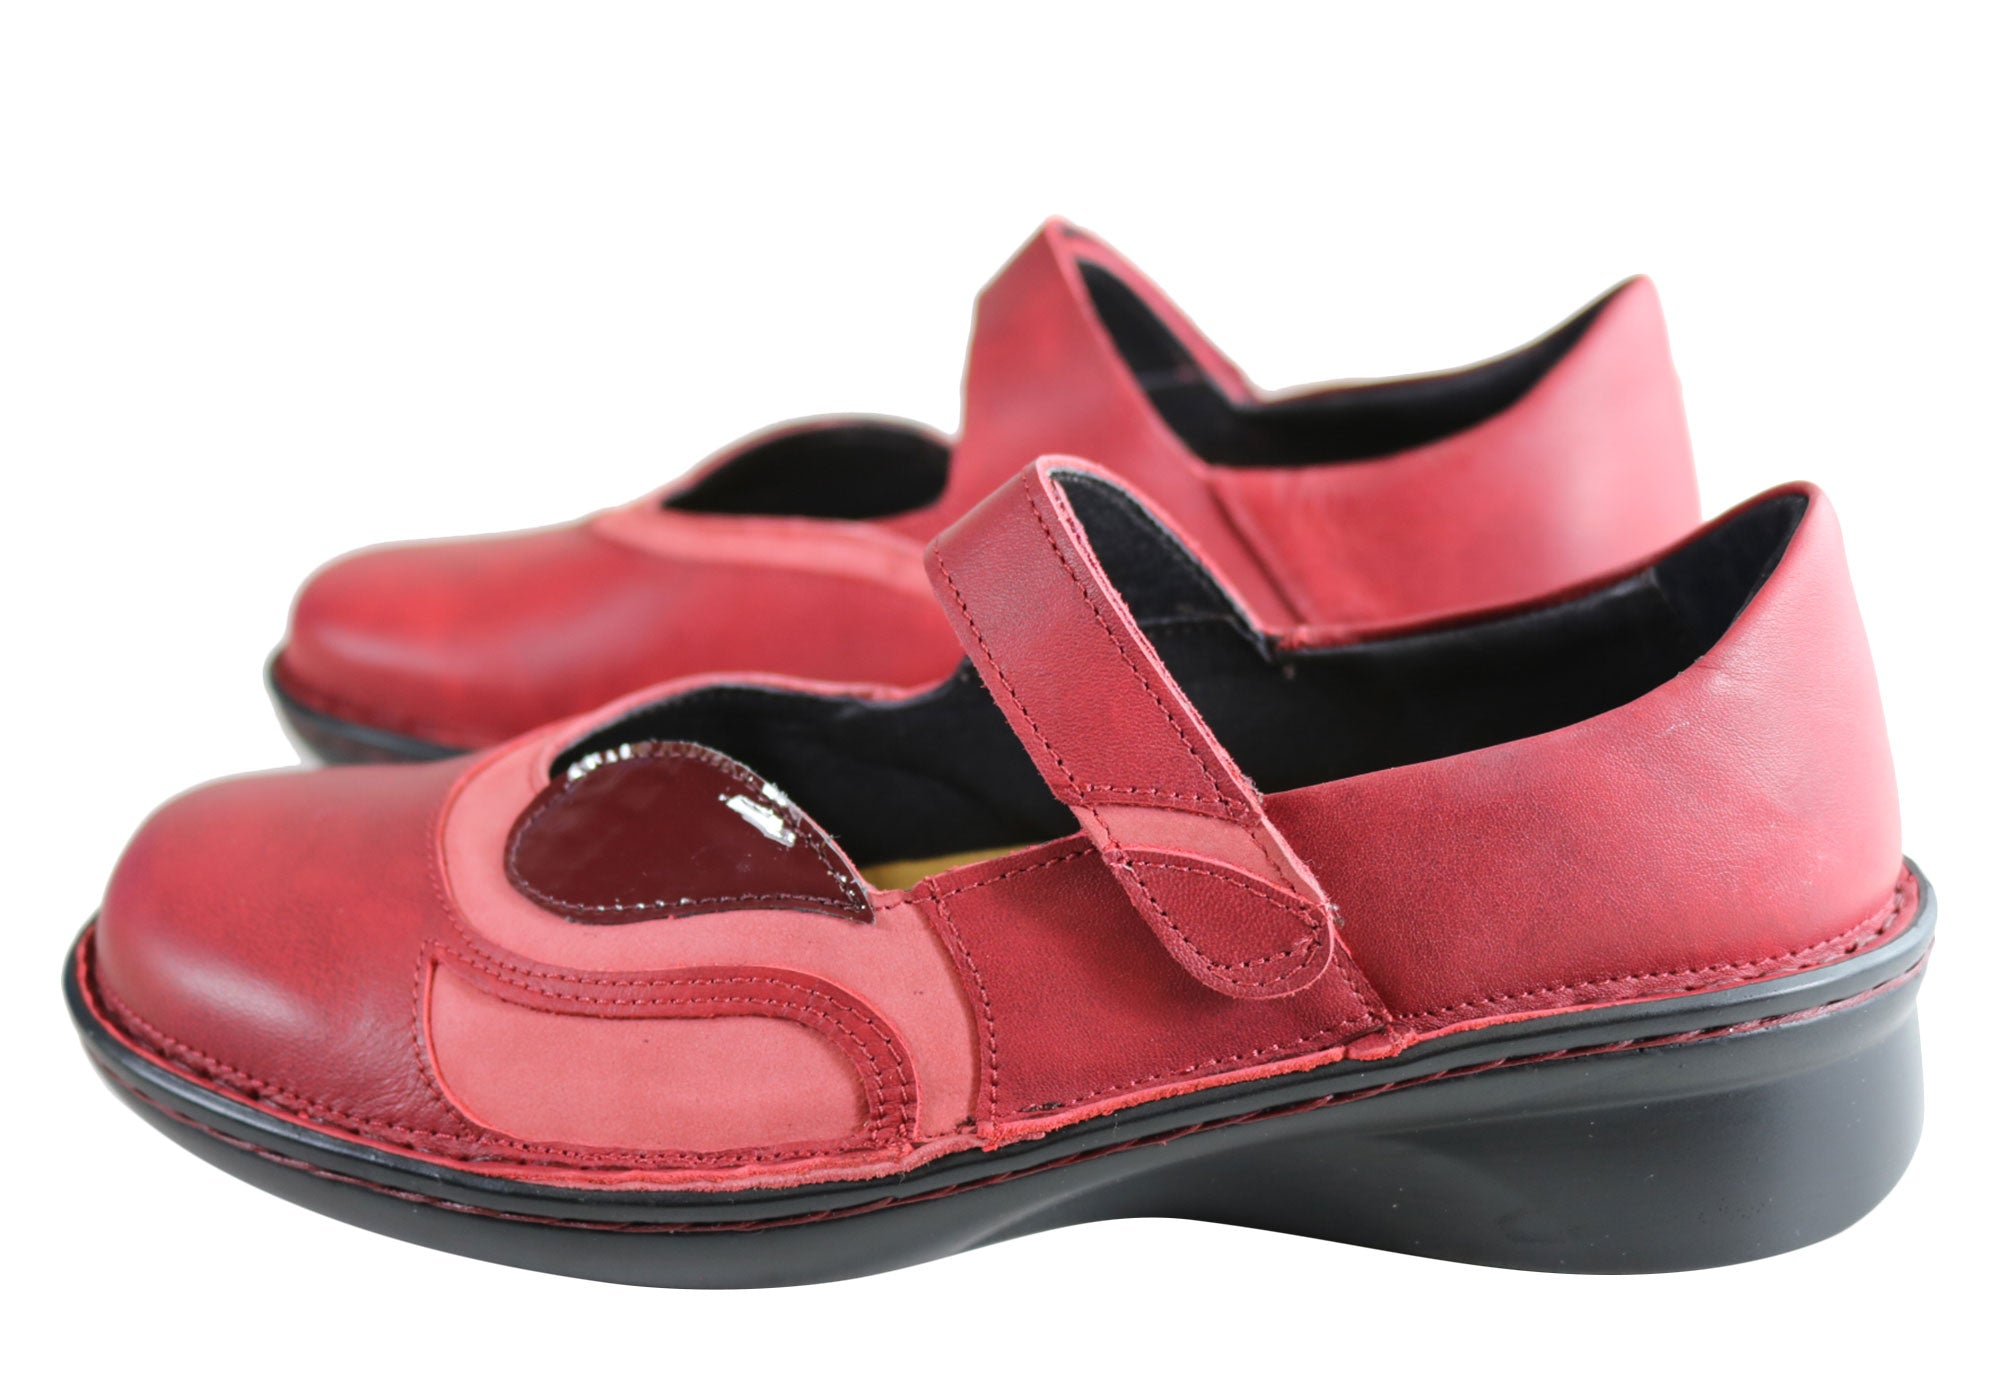 Naot Conga Womens Comfort Supportive Wide Fit Leather Mary Jane Shoes